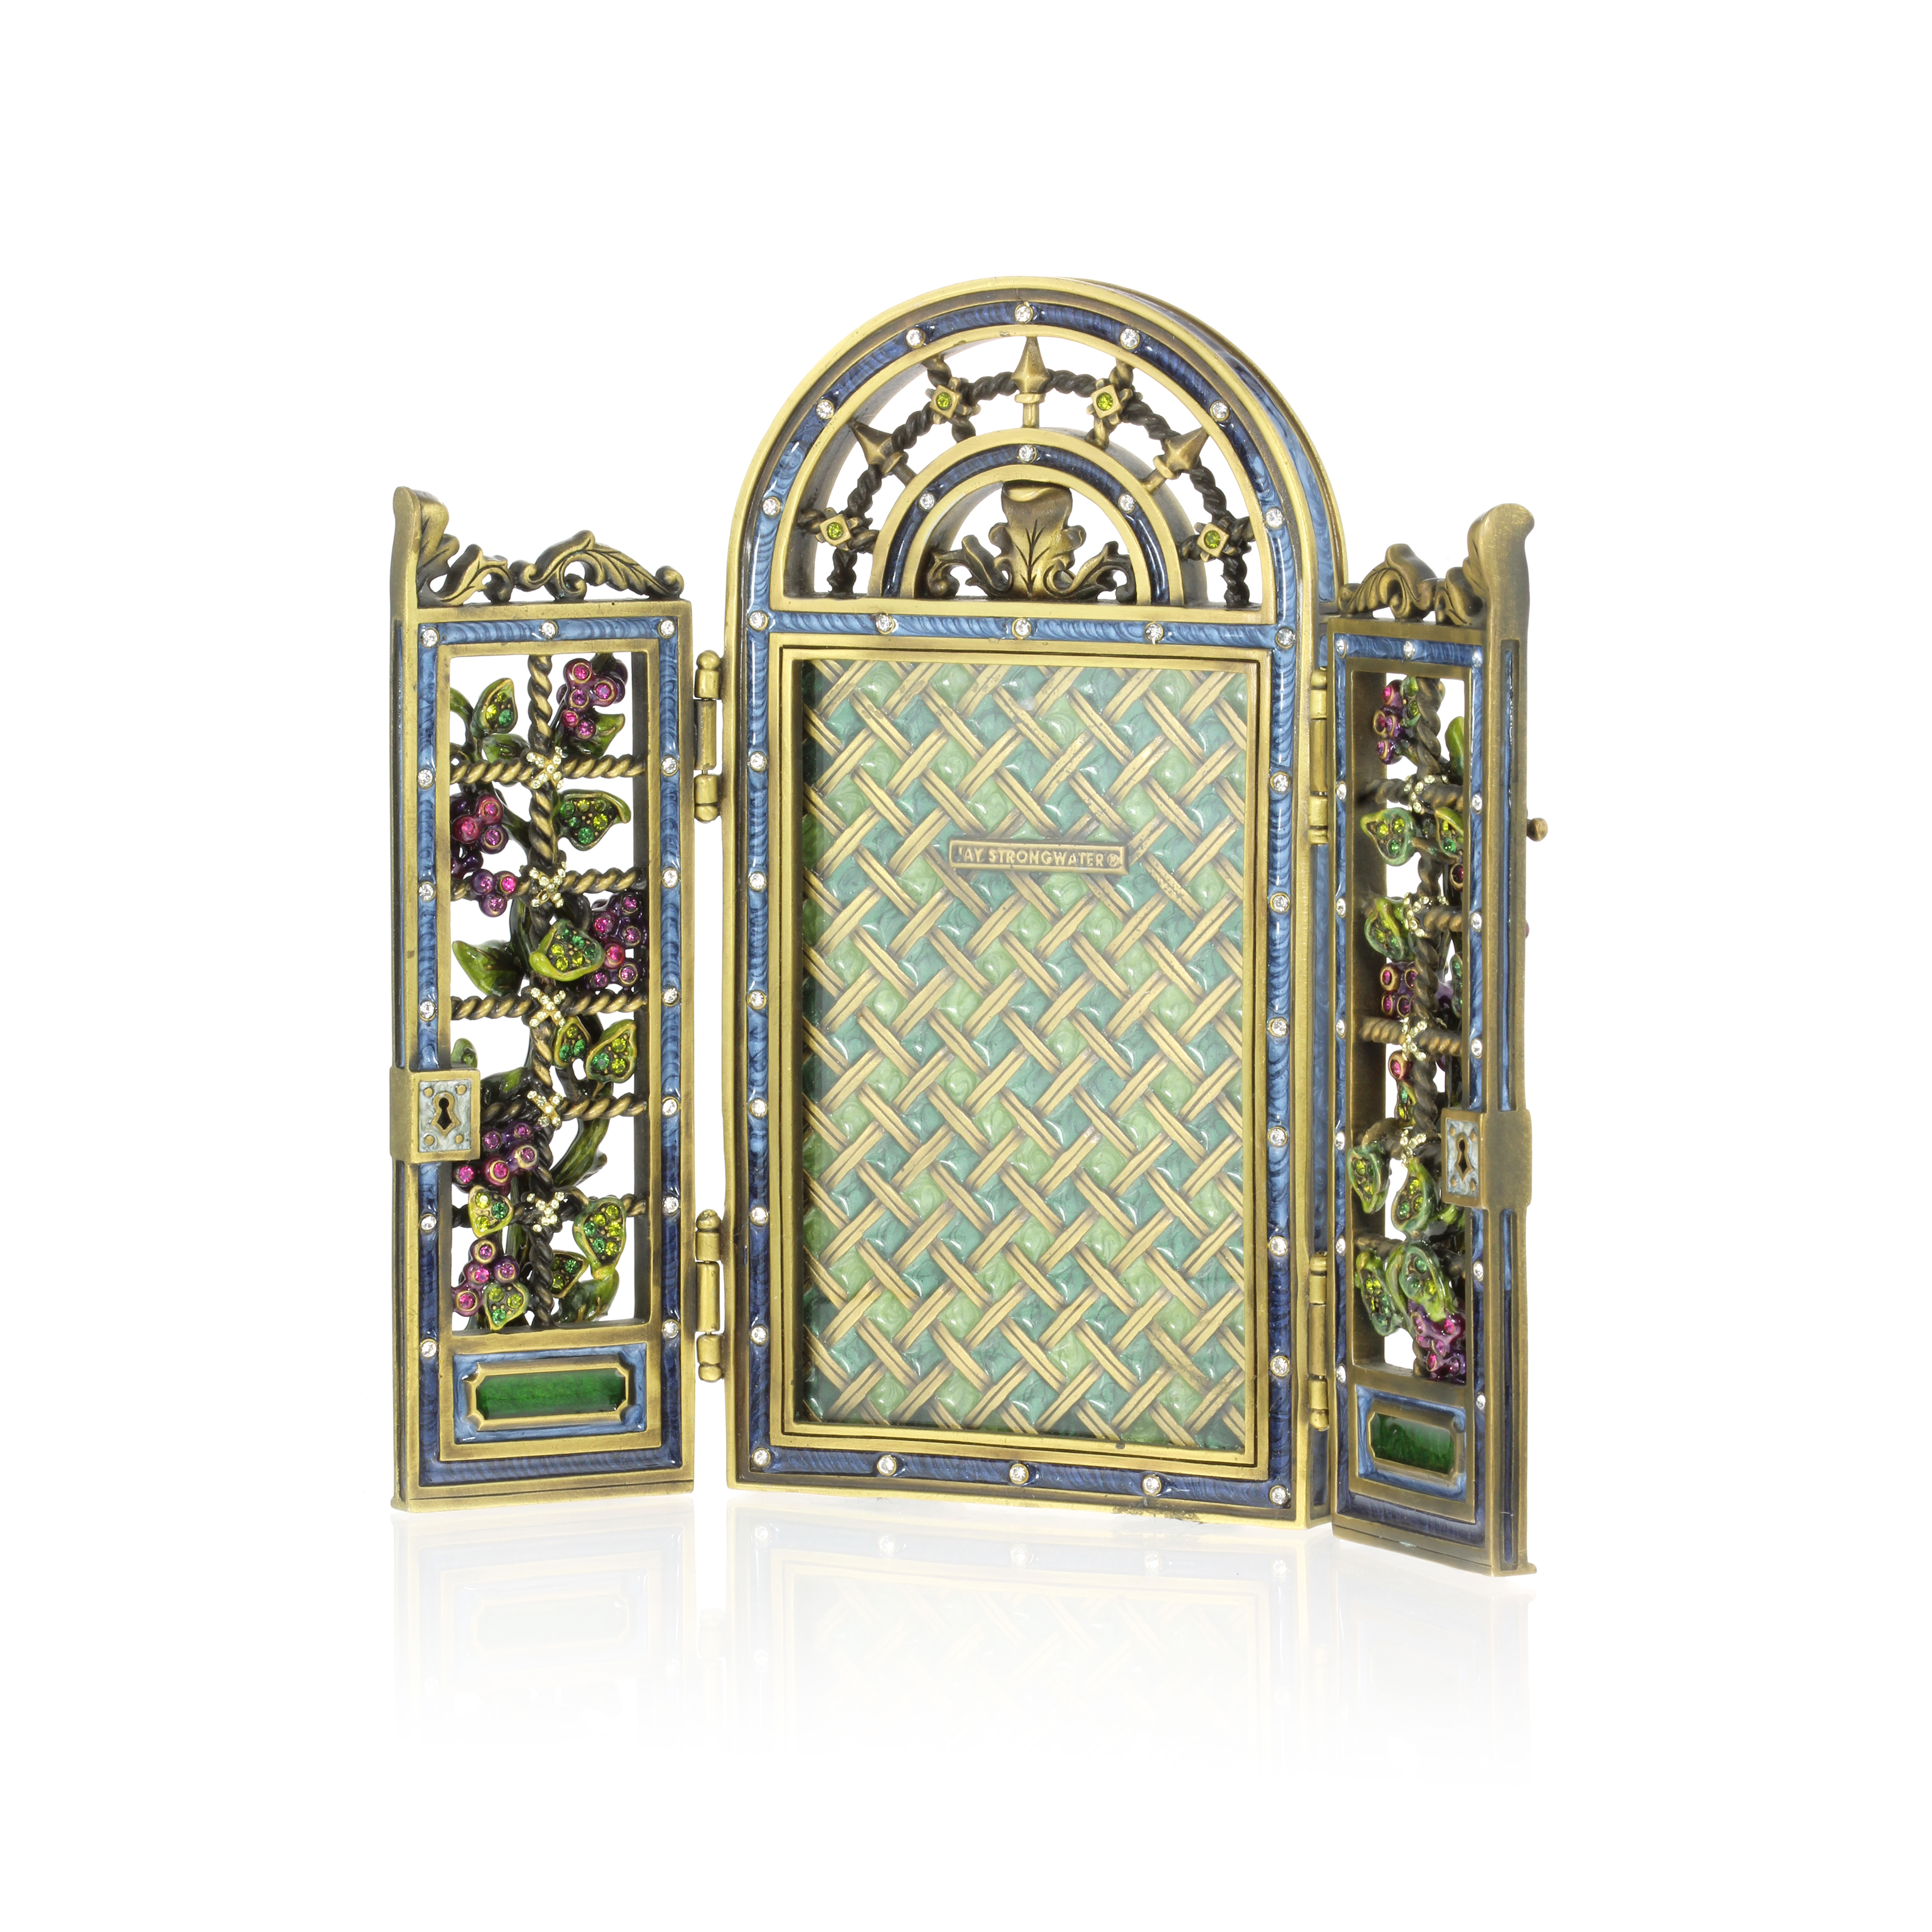 Los 184 - A JEWELLED PHOTOGRAPH FRAME, JAY STRONGWATER designed as an arch with folding double door front